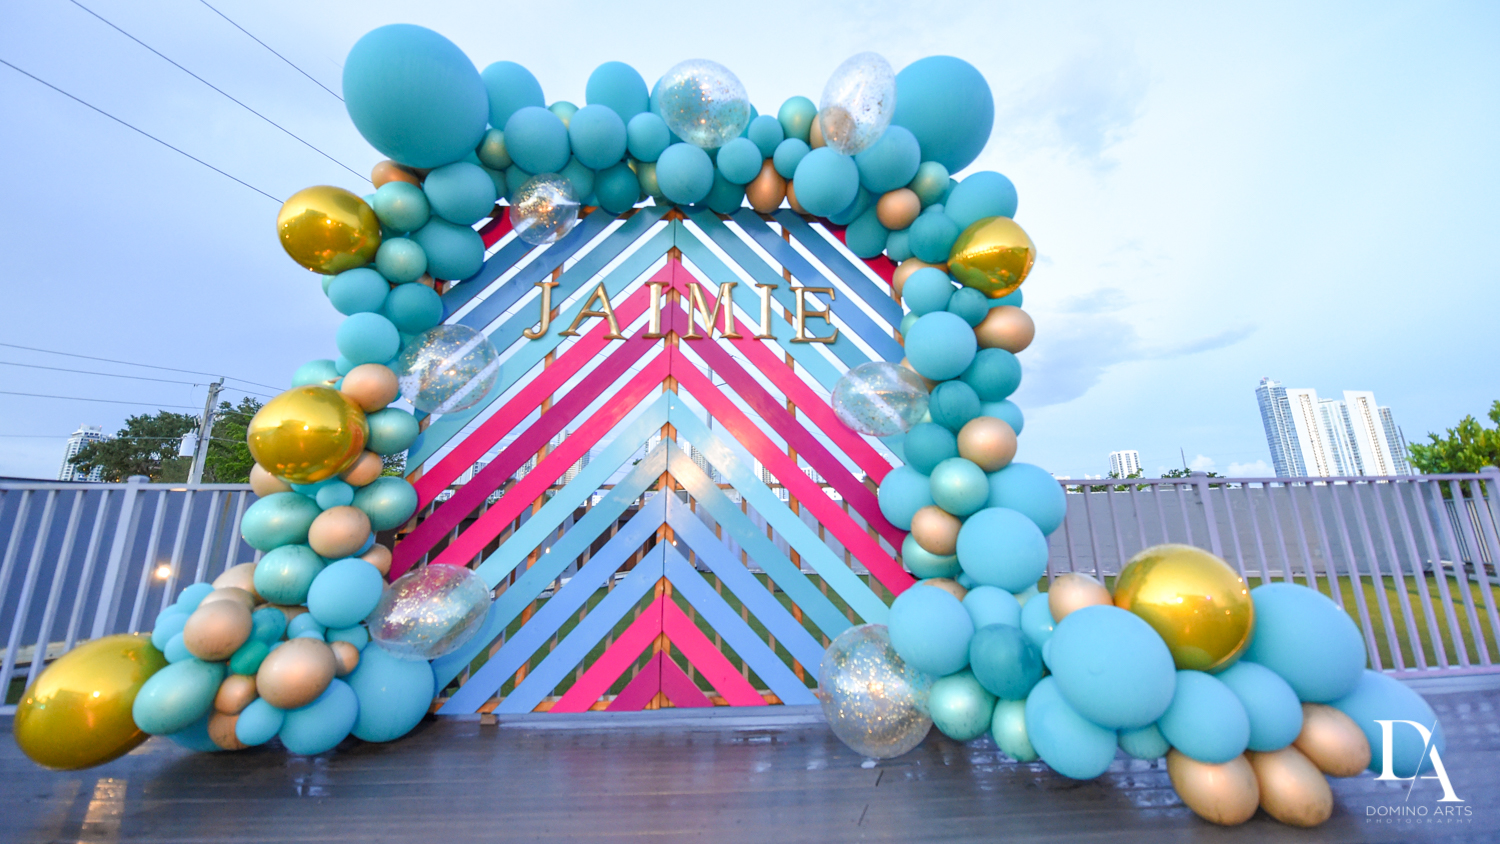 Birthday Party Decor at Wynwood Miami by Domino Arts